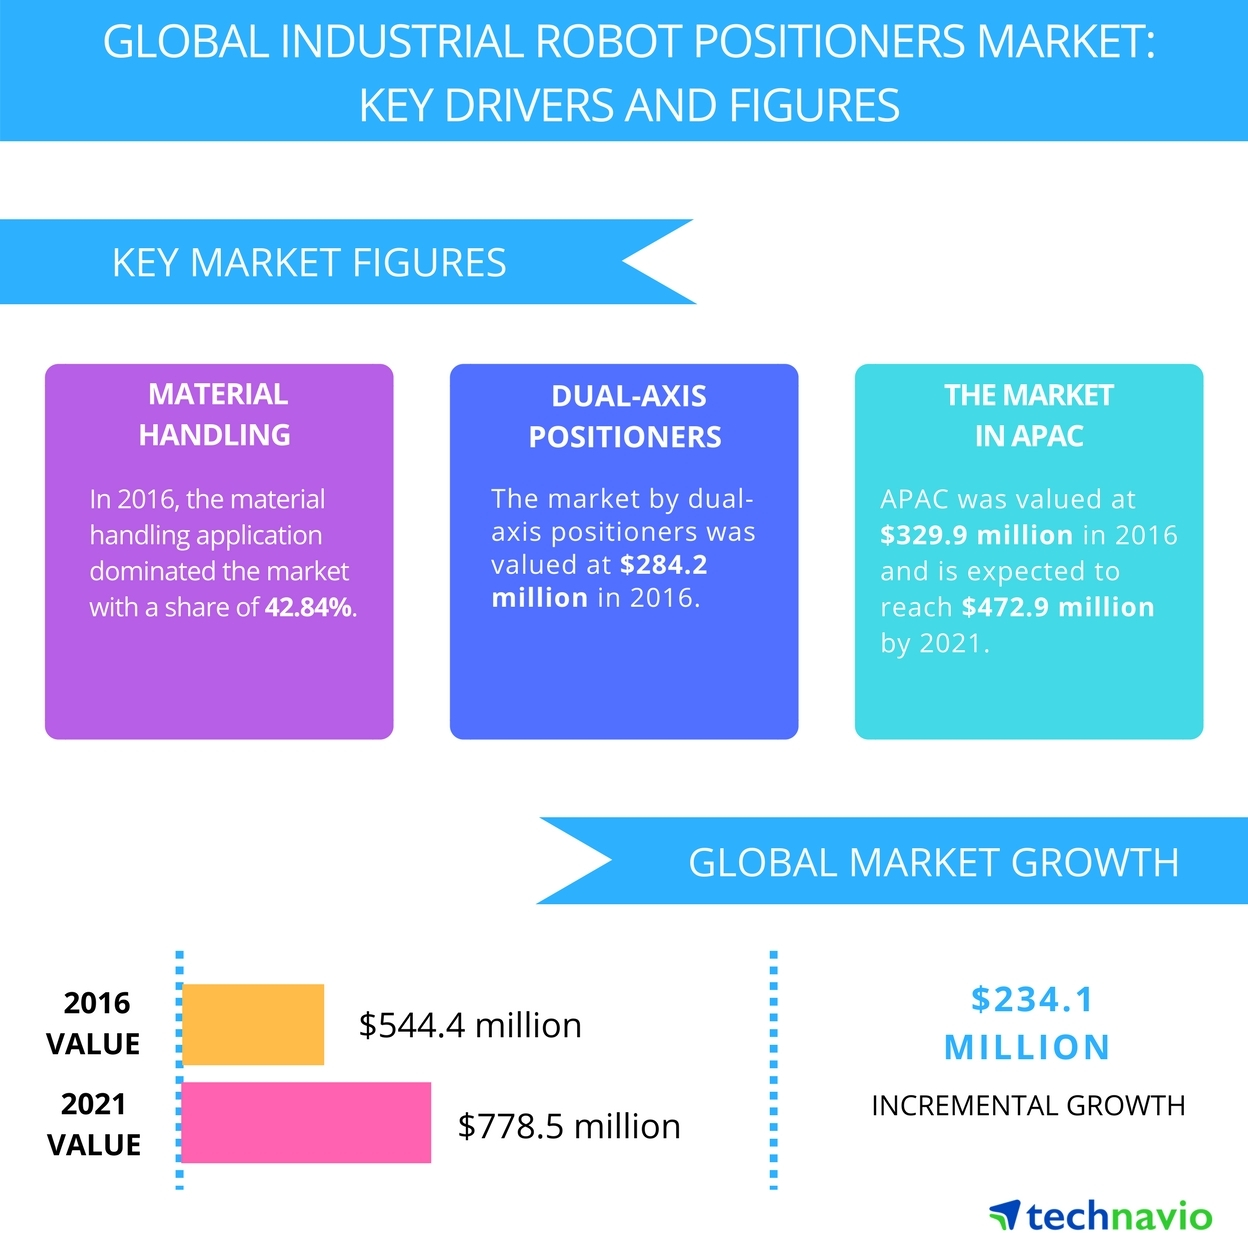 Technavio has announced the release of their 'Global Industrial Robot Positioners Market 2017-2021' report. (Graphic: Business Wire)